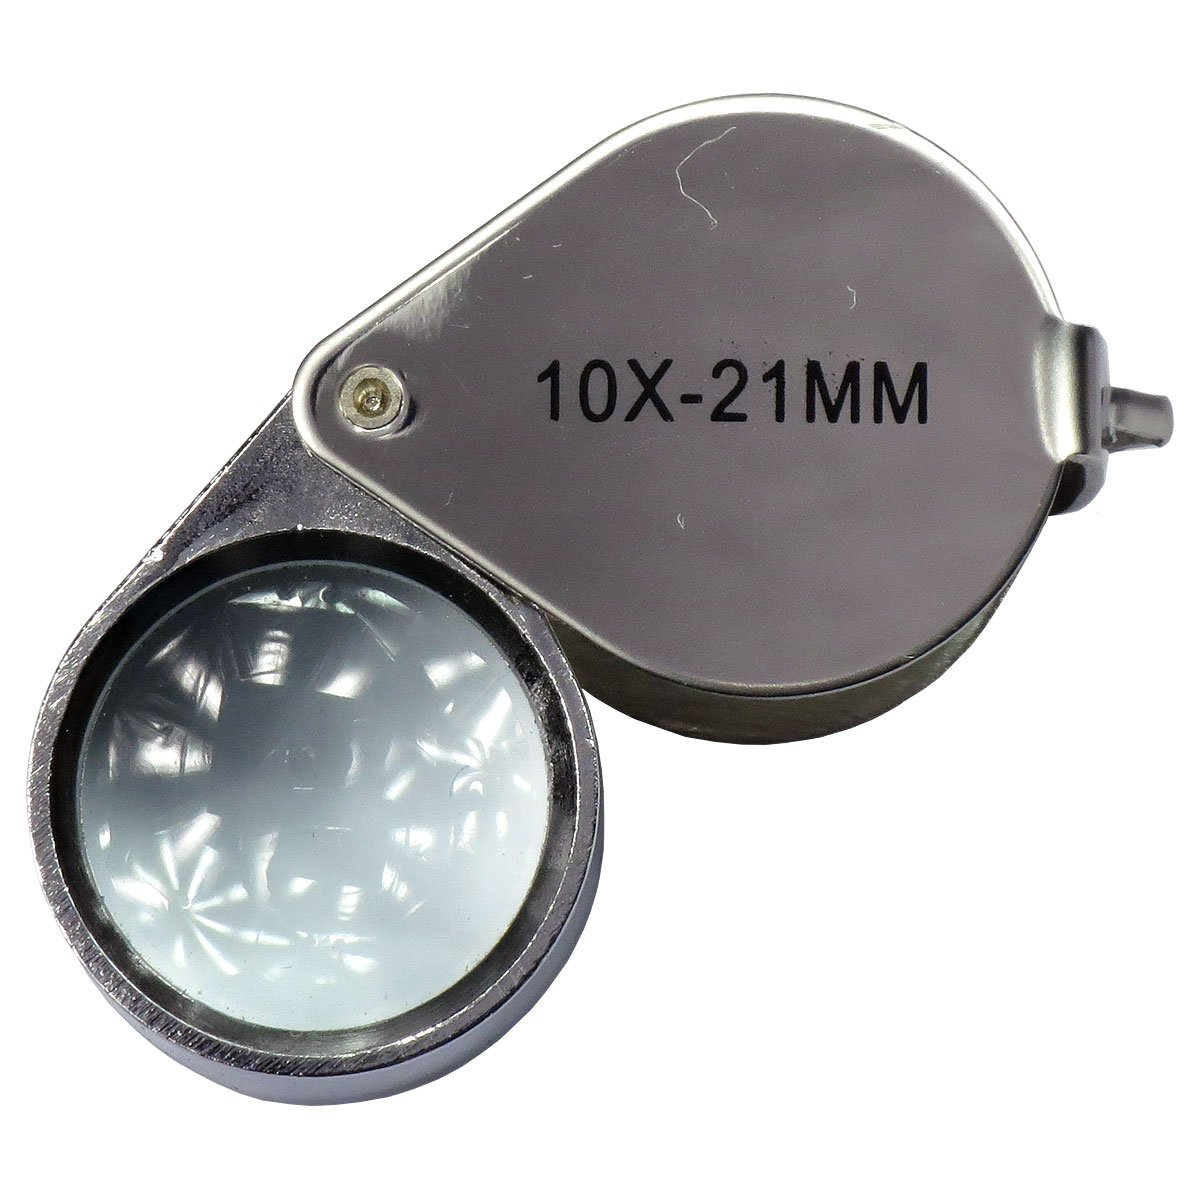 HTS 202L3 30x 21mm Stainless Steel Jewelers Singlet Loupe